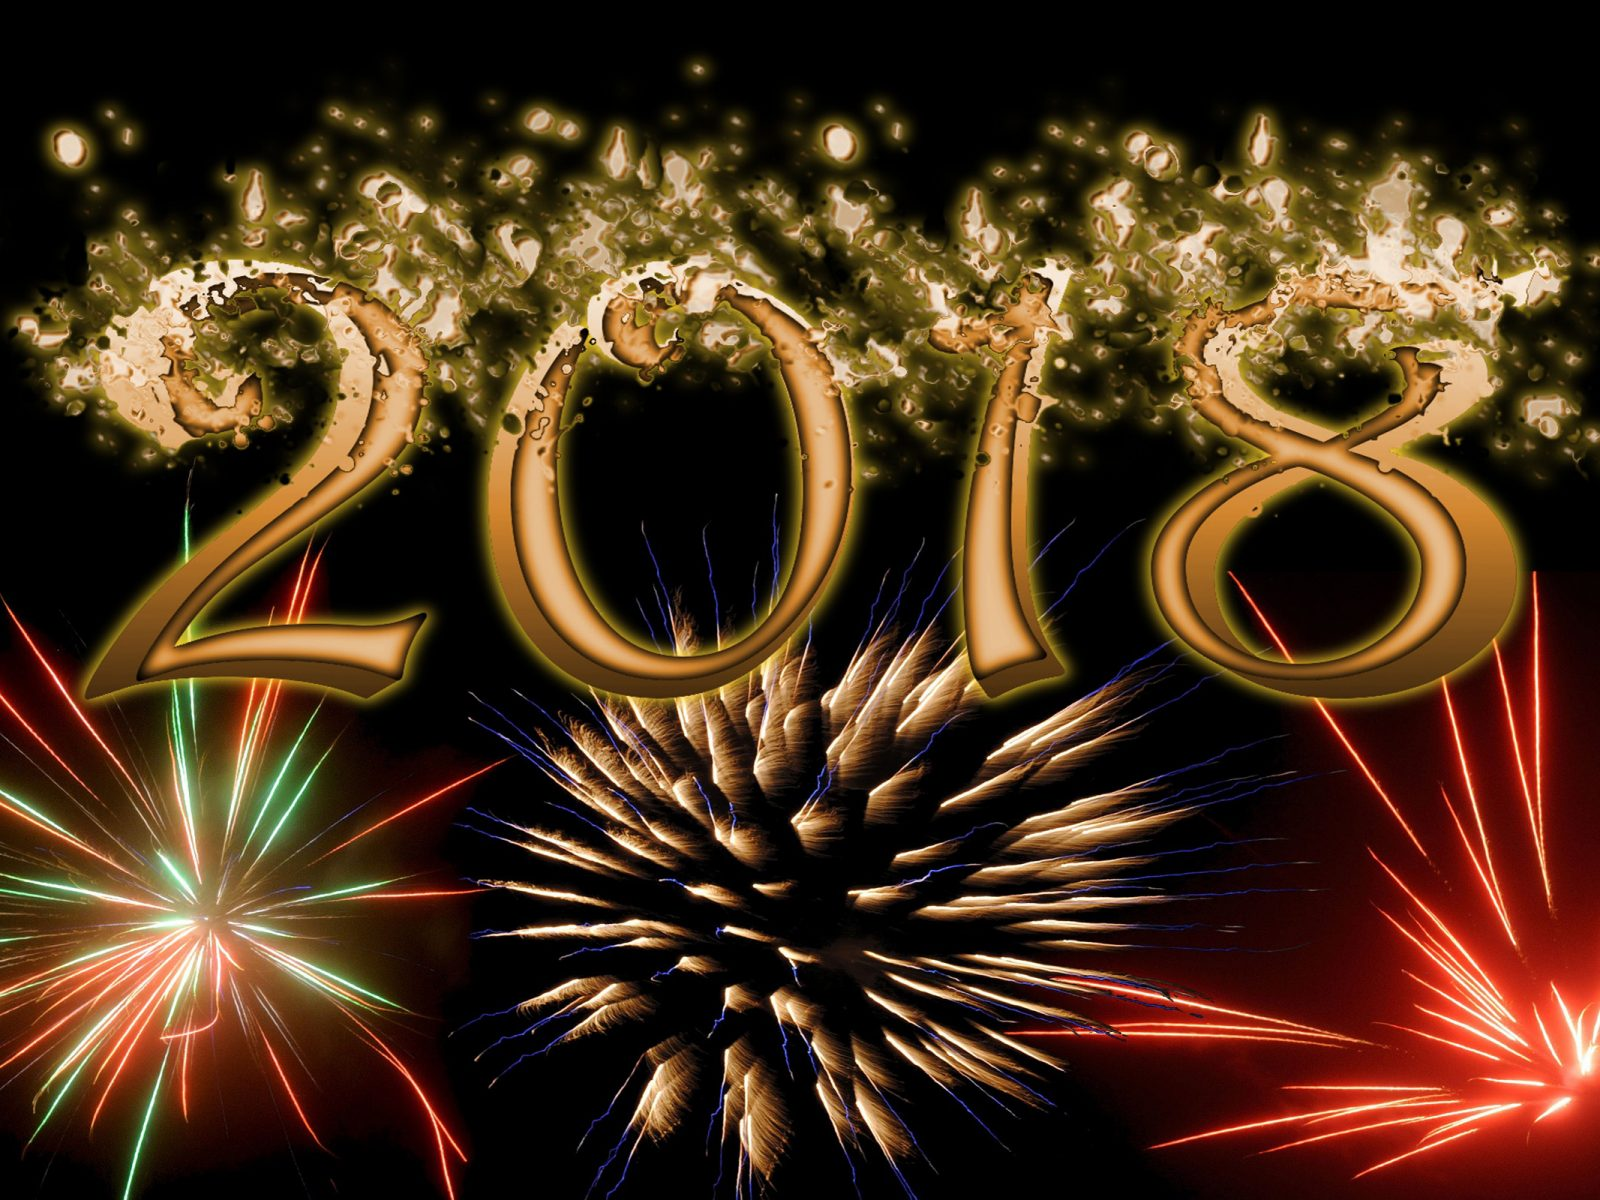 New Year's Eve 2018 Wallpapers - WallpaperSafari  New Year's ...